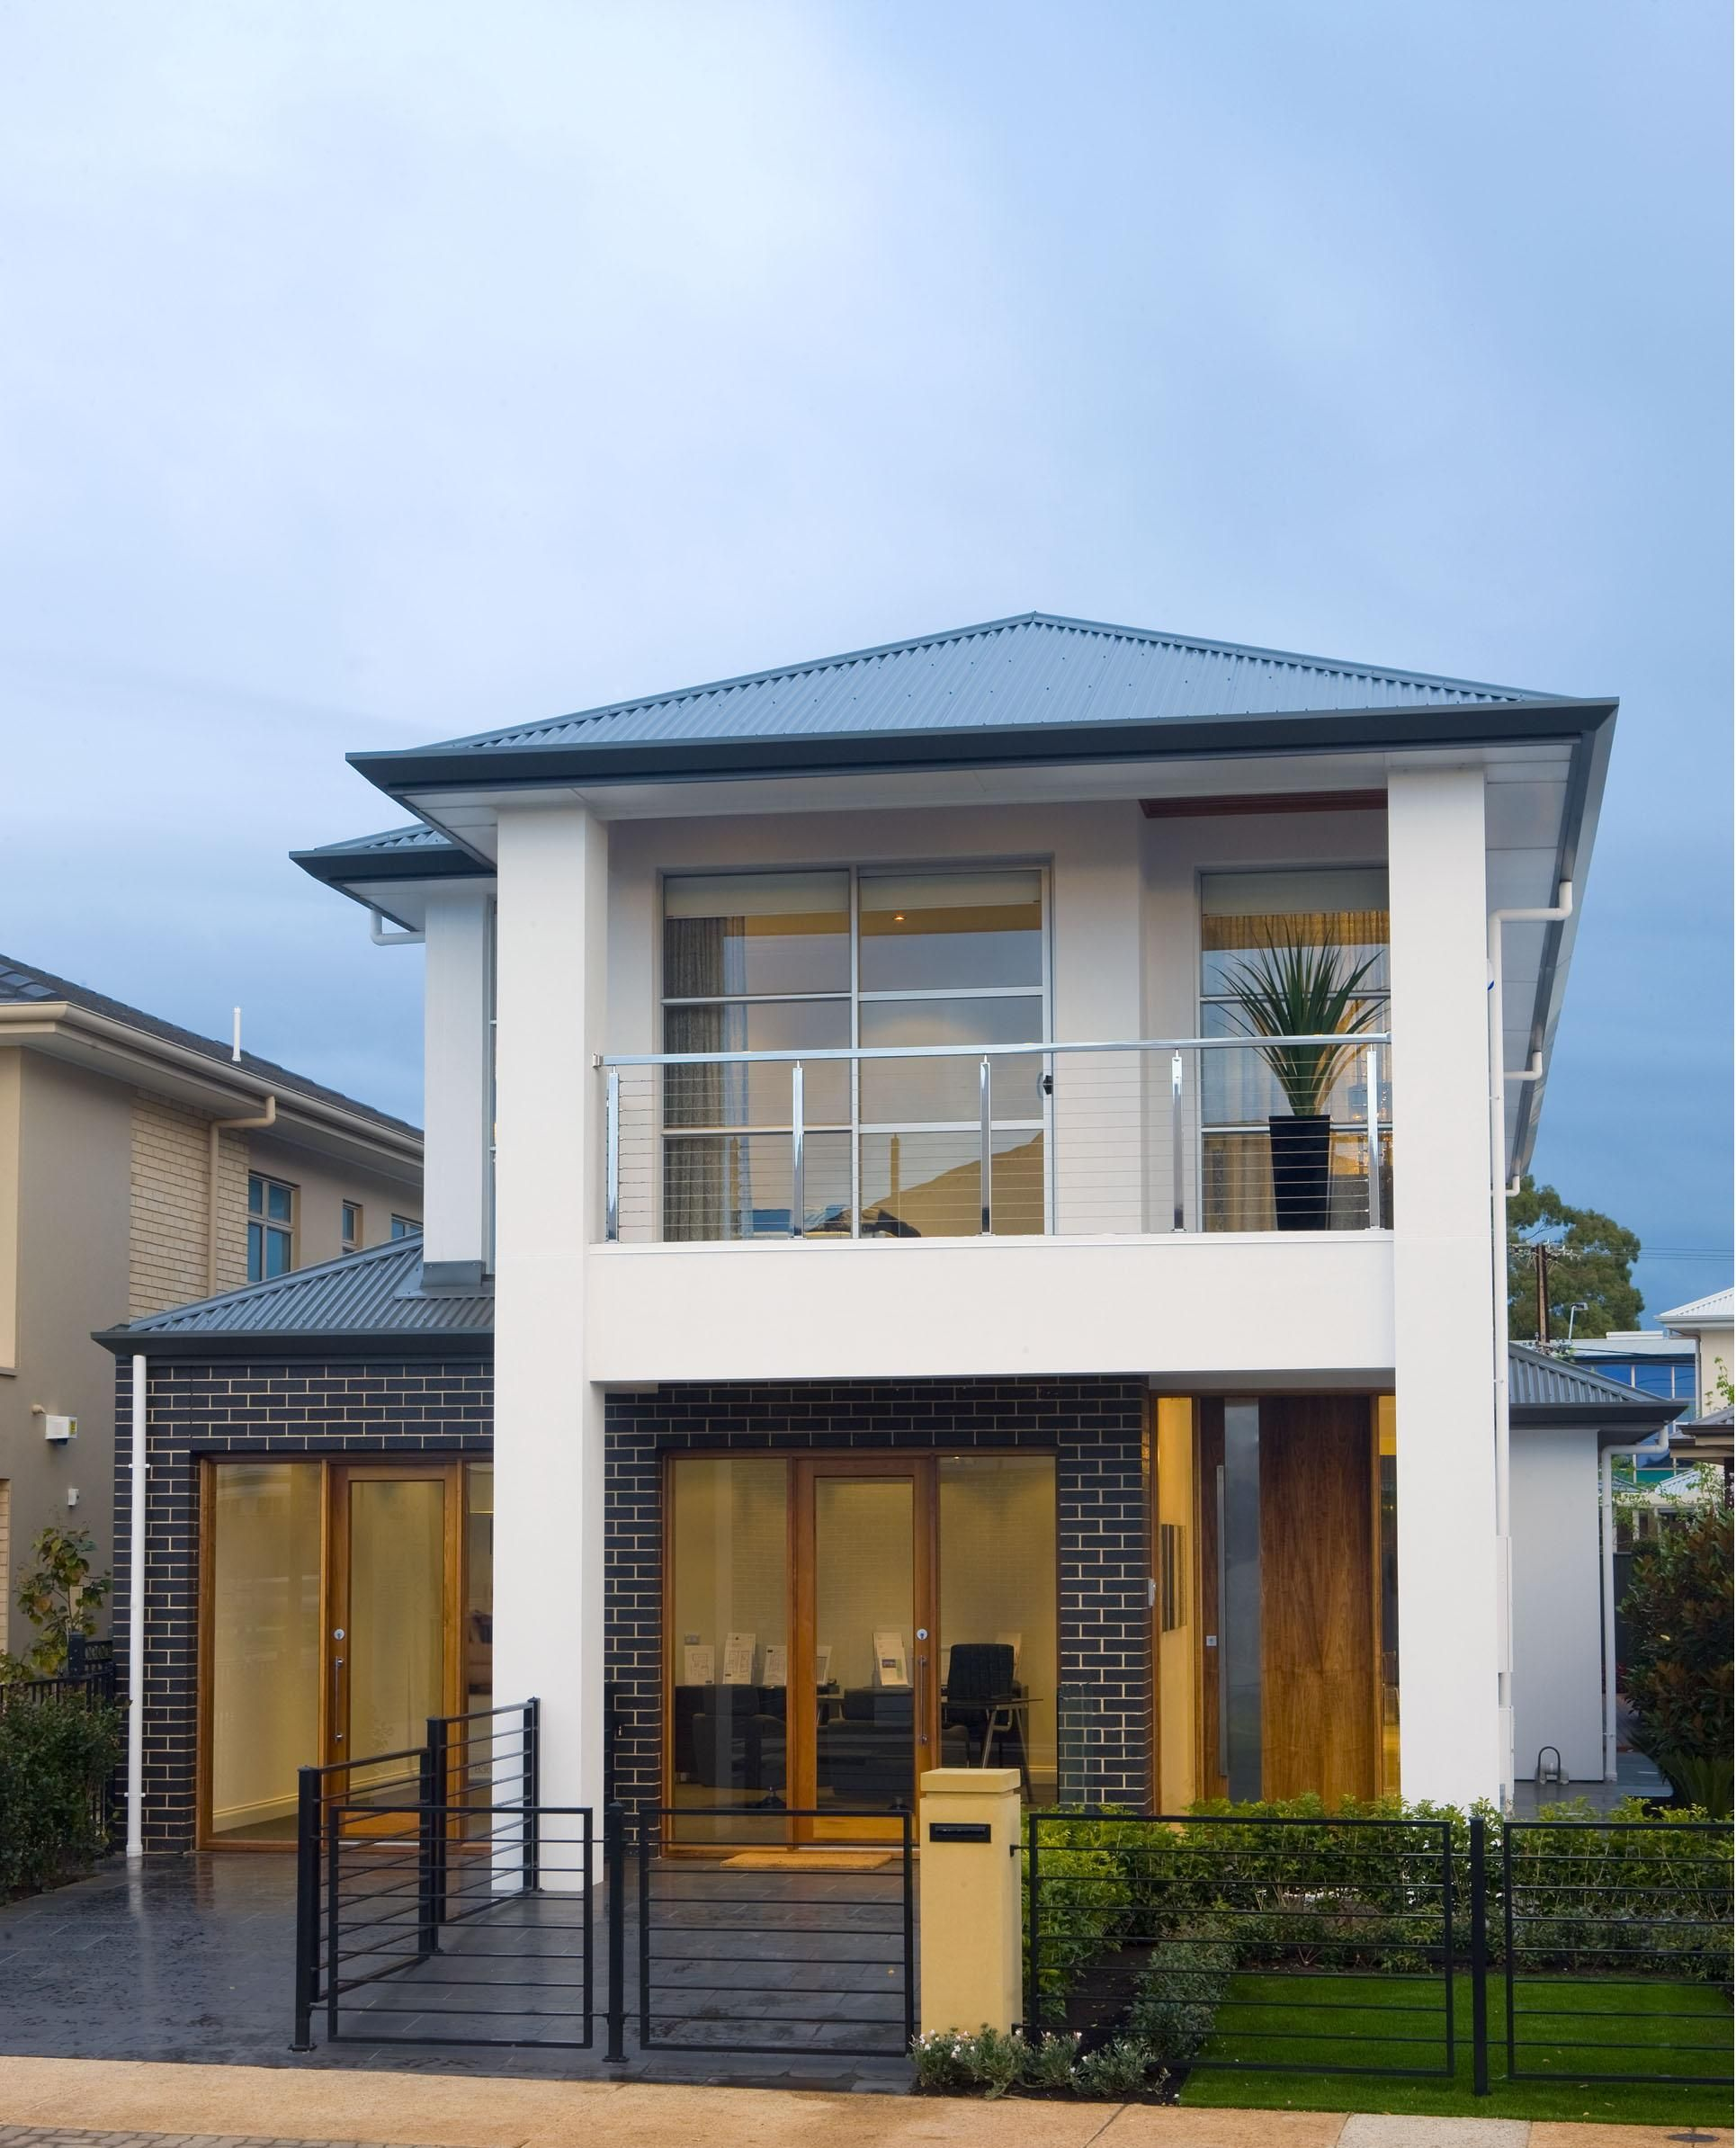 Dechellis display homes tuscany visit for Tuscan style homes australia